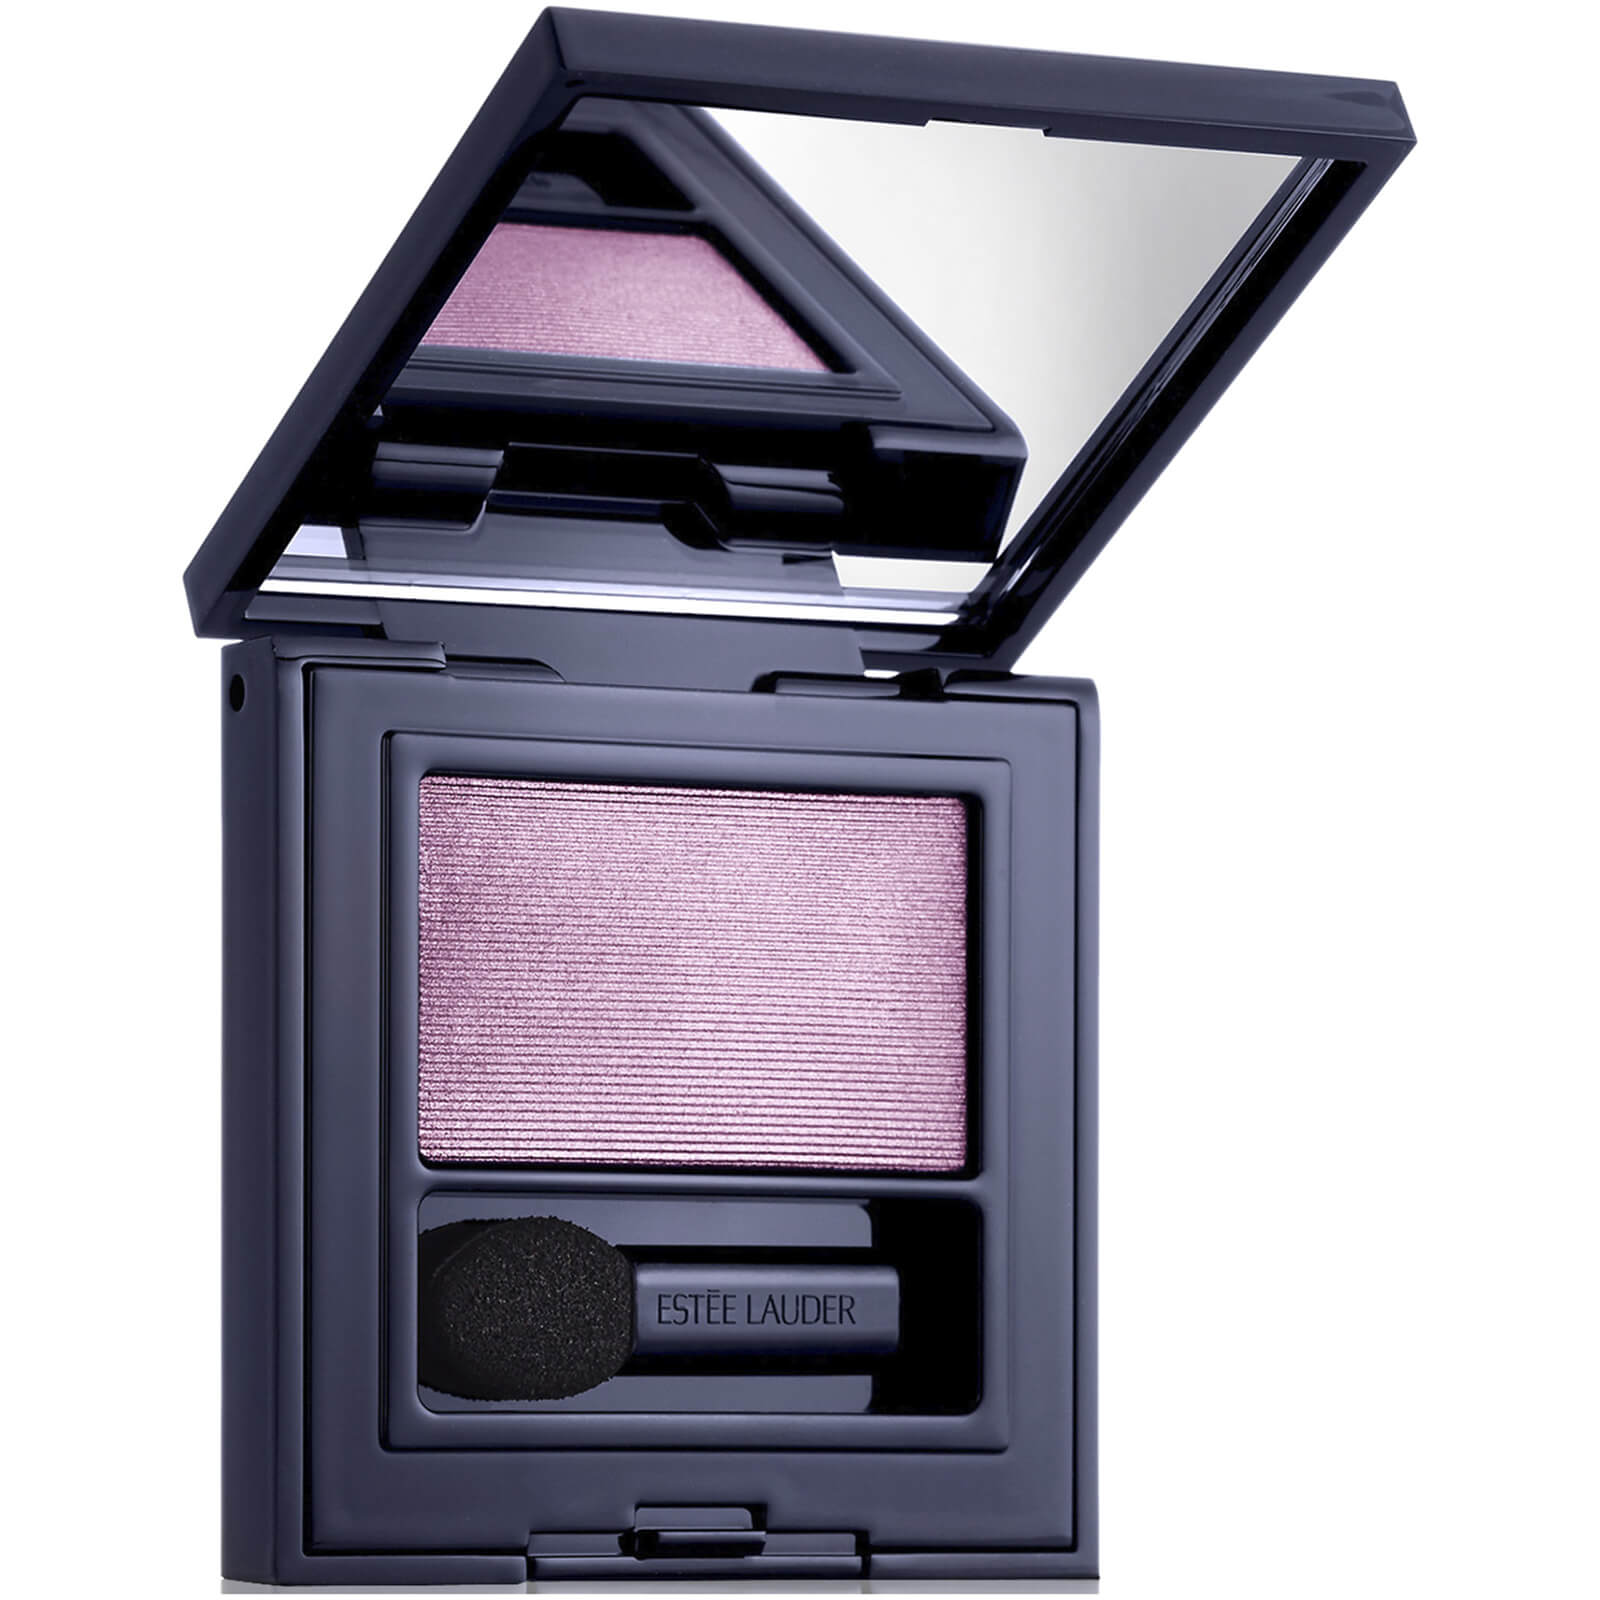 Estée Lauder Pure Colour Envy Defining Eye Shadow 1.8g (Various Shades) - Brilliant - Fearless Petal